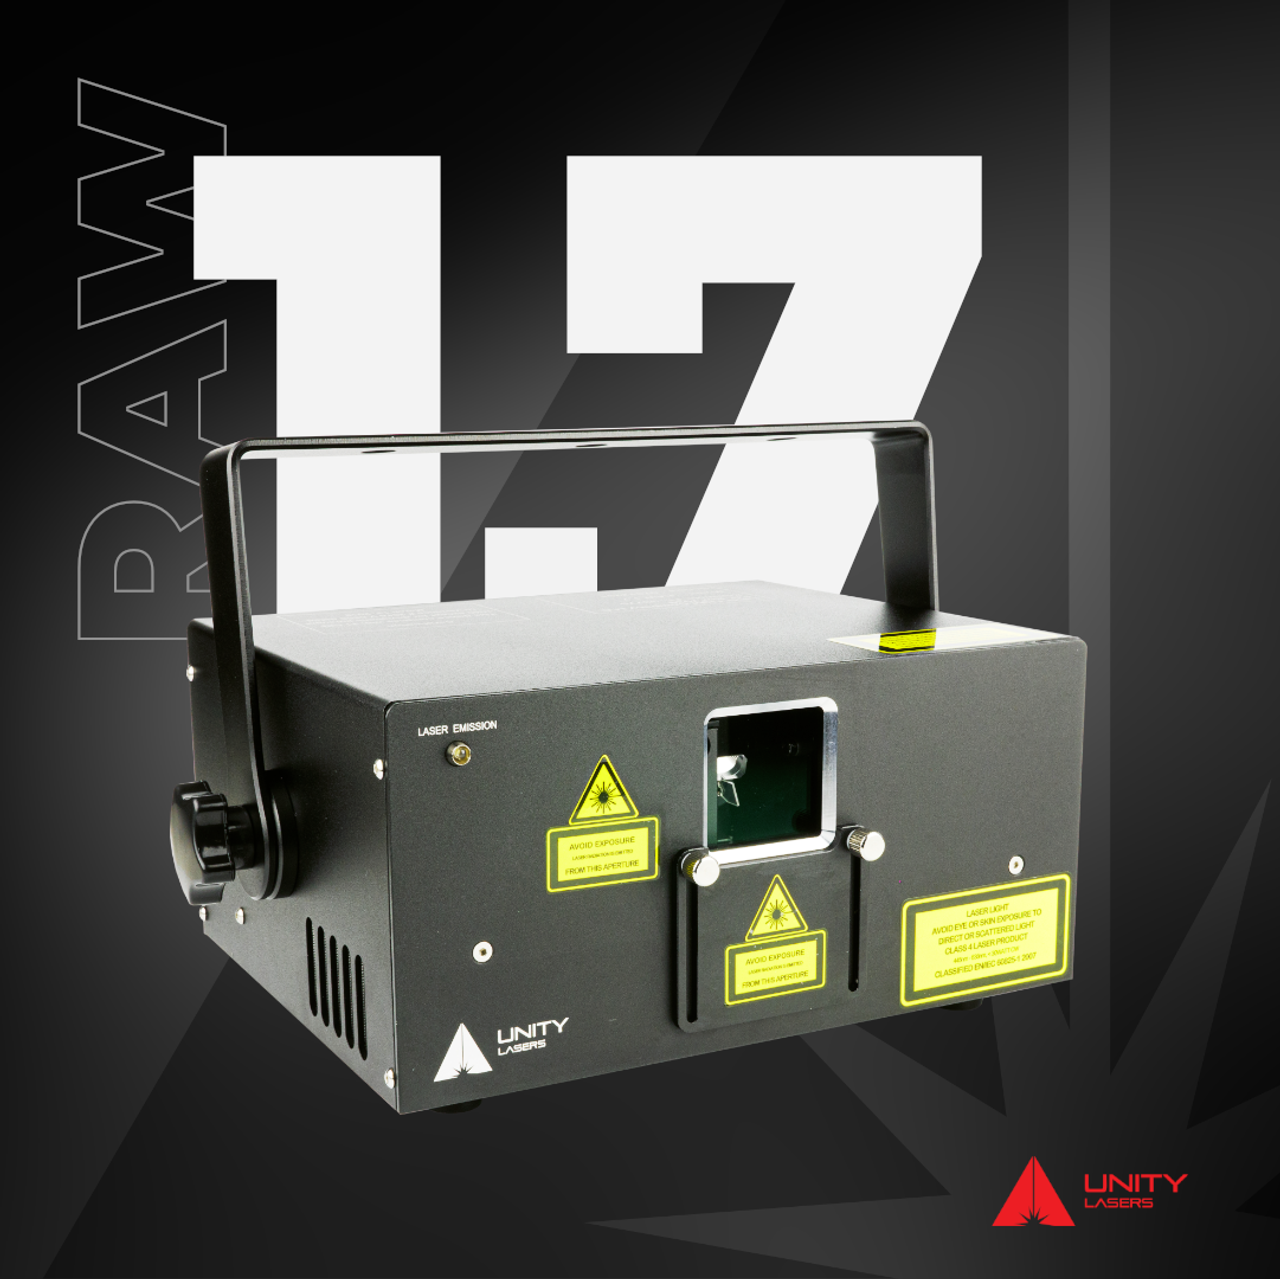 Unity Lasers RAW 1.7 Laser Projector